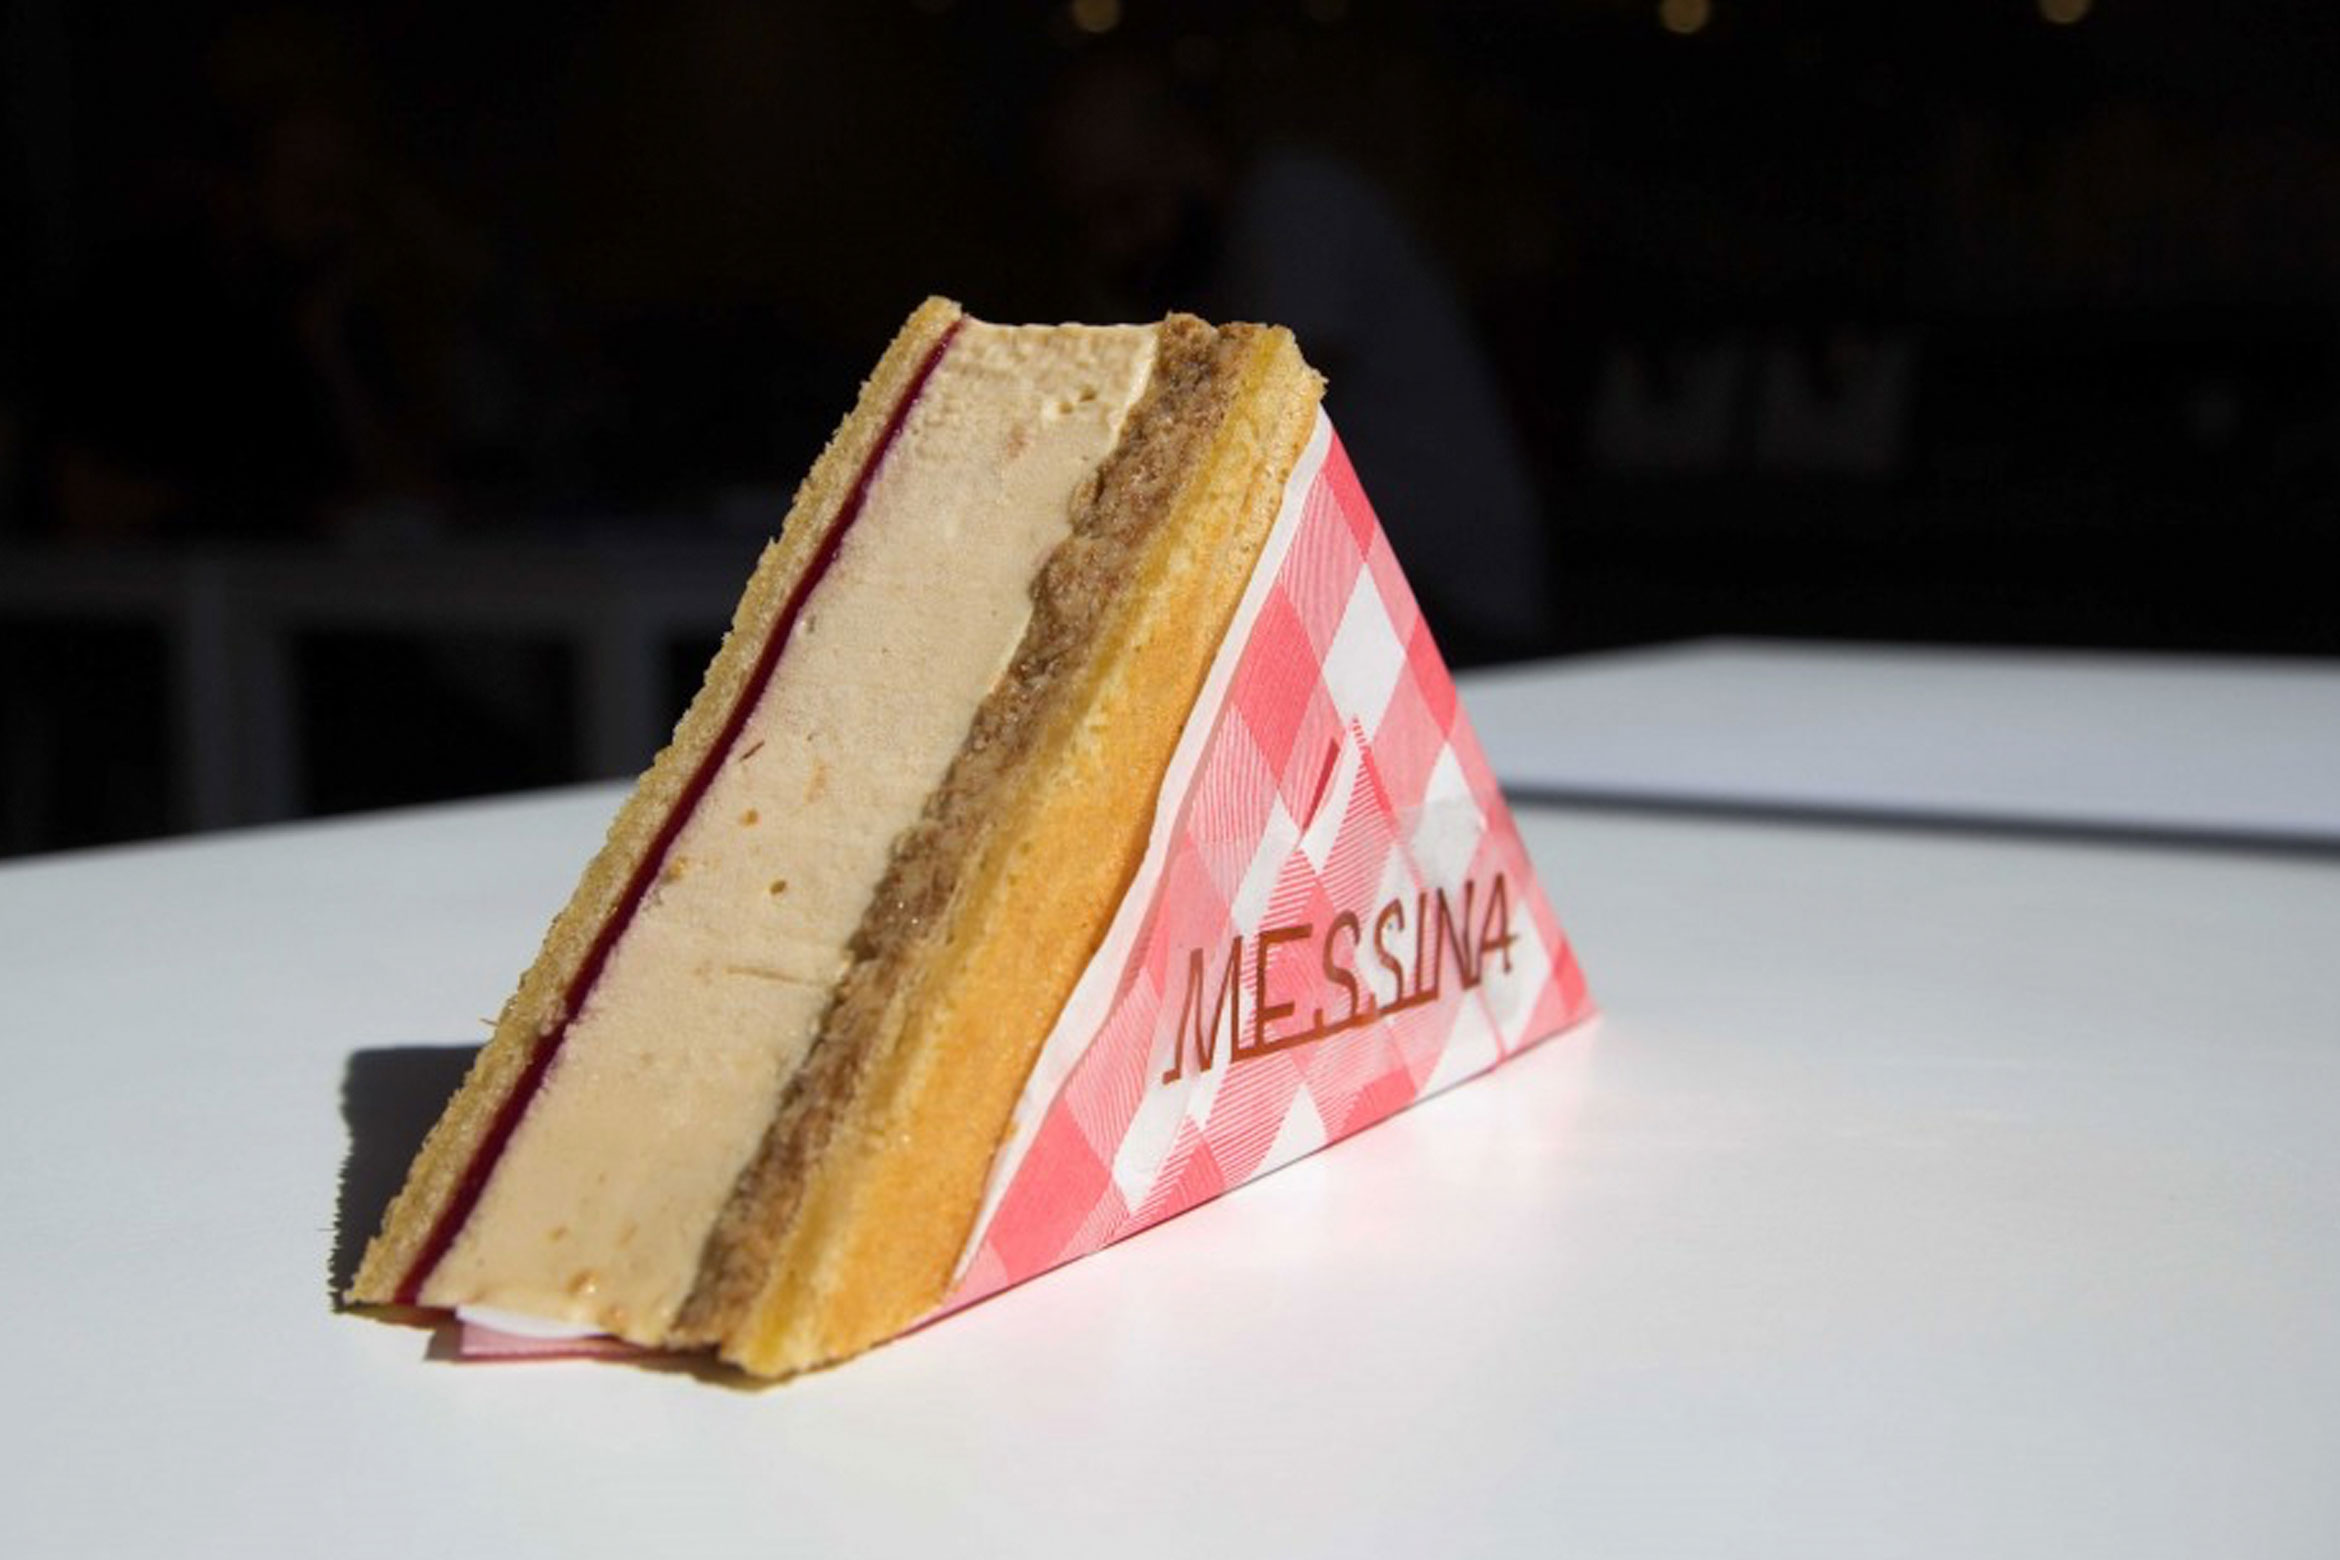 Messina's Peanut Butter and Jelly Gelato Sandwich